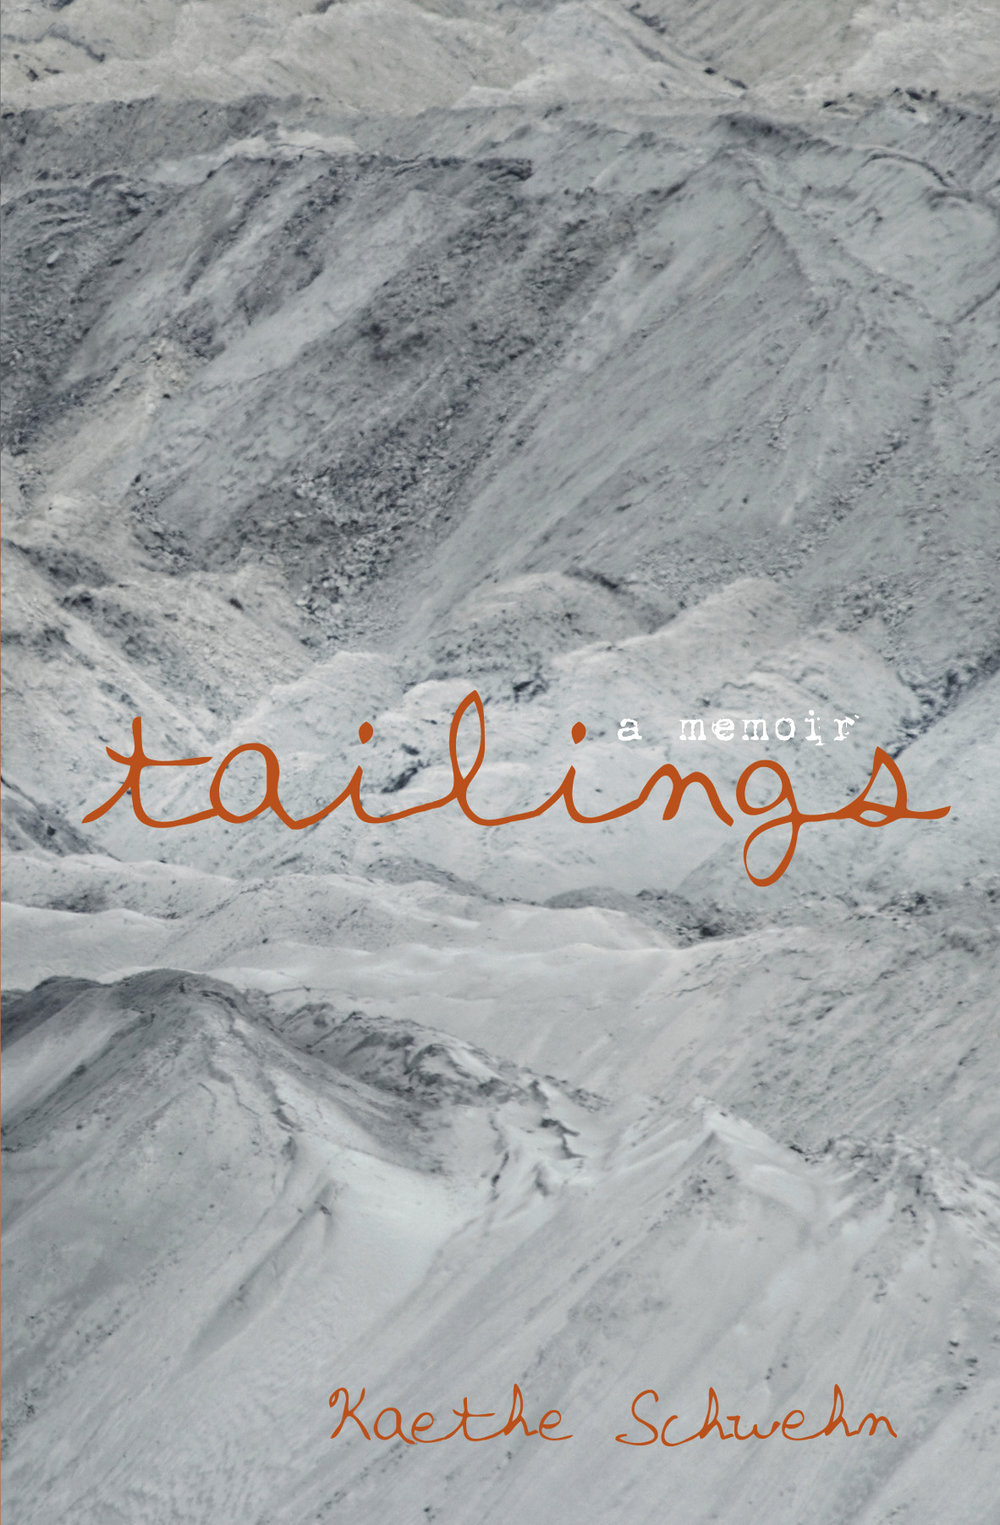 "Tailings - Minnesota Book Award Winner""It is not easy to write fluidly of earnestness. Nor is it simple to lend a real radiance to depictions of epiphanies…But thanks to her command of language and her well-placed use of imagery, Schwehn nudges the reader into the physical as well as contemplative experience…Wisely, she does not inflate the significance of her own quest. These elements endow this memoir with grace itself — and that is the achievement and appeal of this remarkably absorbing tale.""— Rosemary Herbert, STAR TRIBUNE""[Schwehn's] deep diving into time and surfacing into the present reality helps readers appreciate what is essentially a coming-of-age story but with its own twists… Kaethe Schwehn has mined every vein of her younger self, and she has emerged as a writer of great promise.""— Shirley Showalter, CHRISTIAN CENTURY"